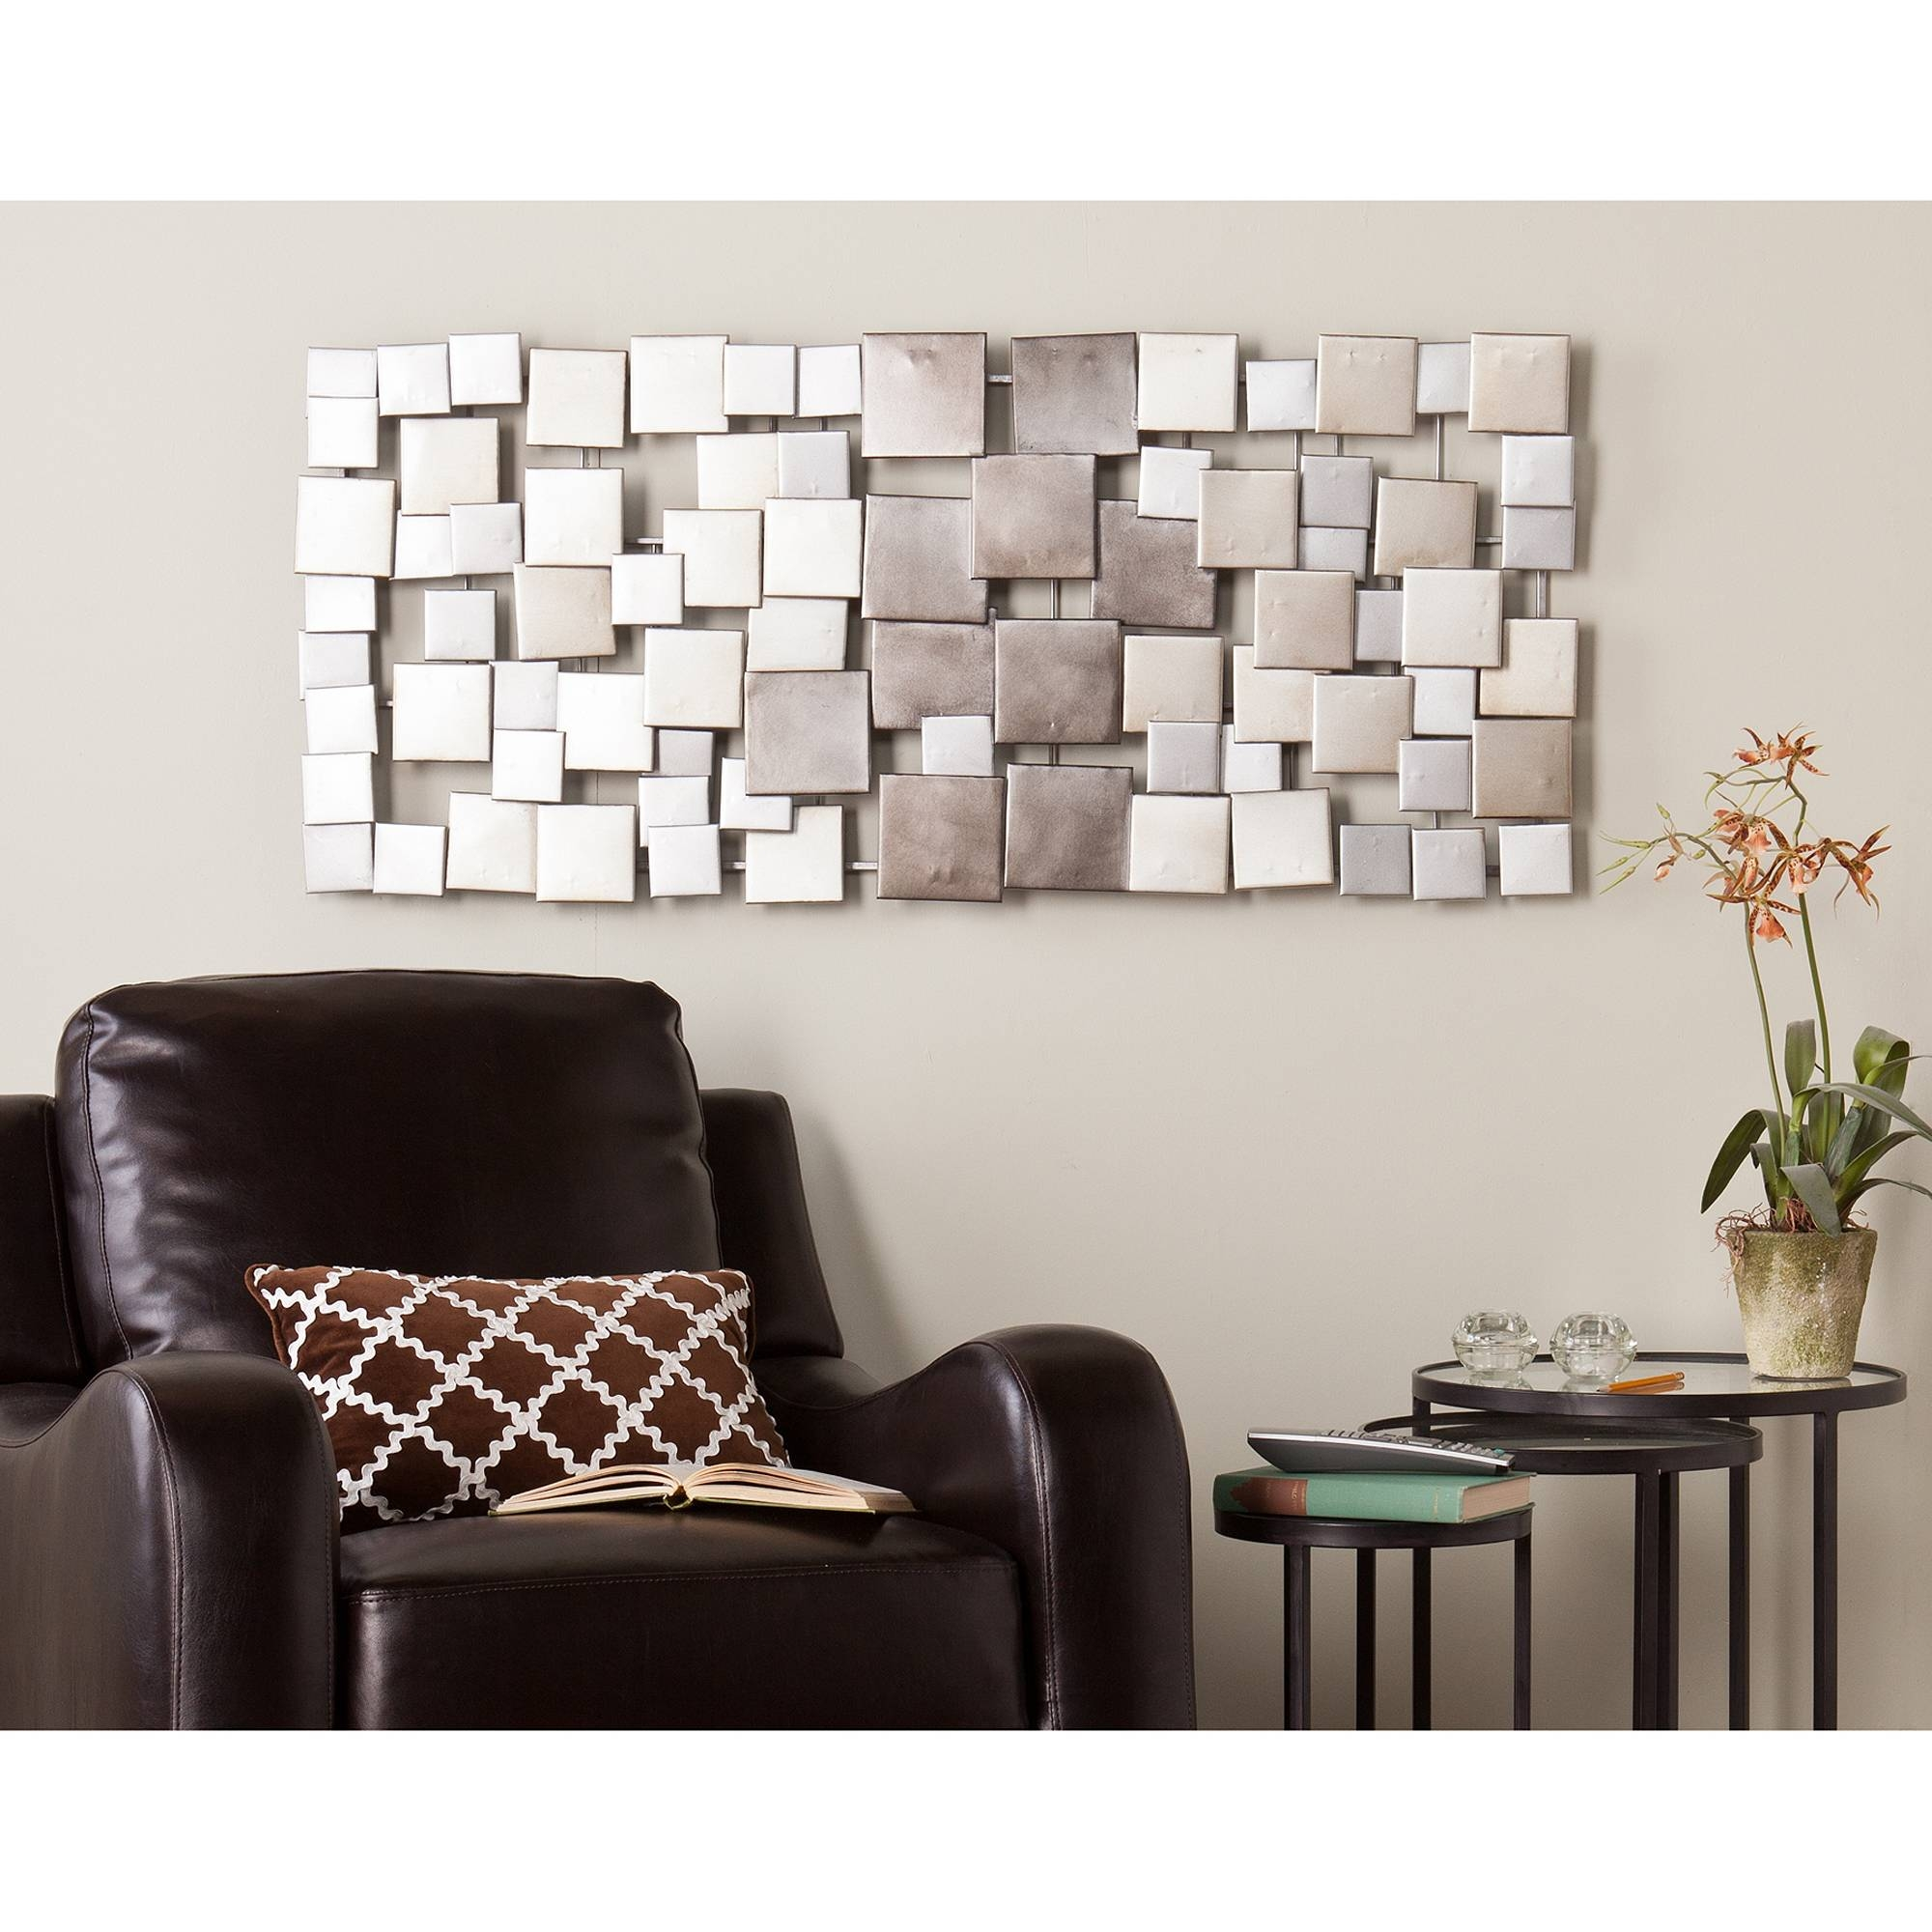 Metal Wall Art – Walmart With Most Current Inexpensive Metal Wall Art (View 14 of 20)